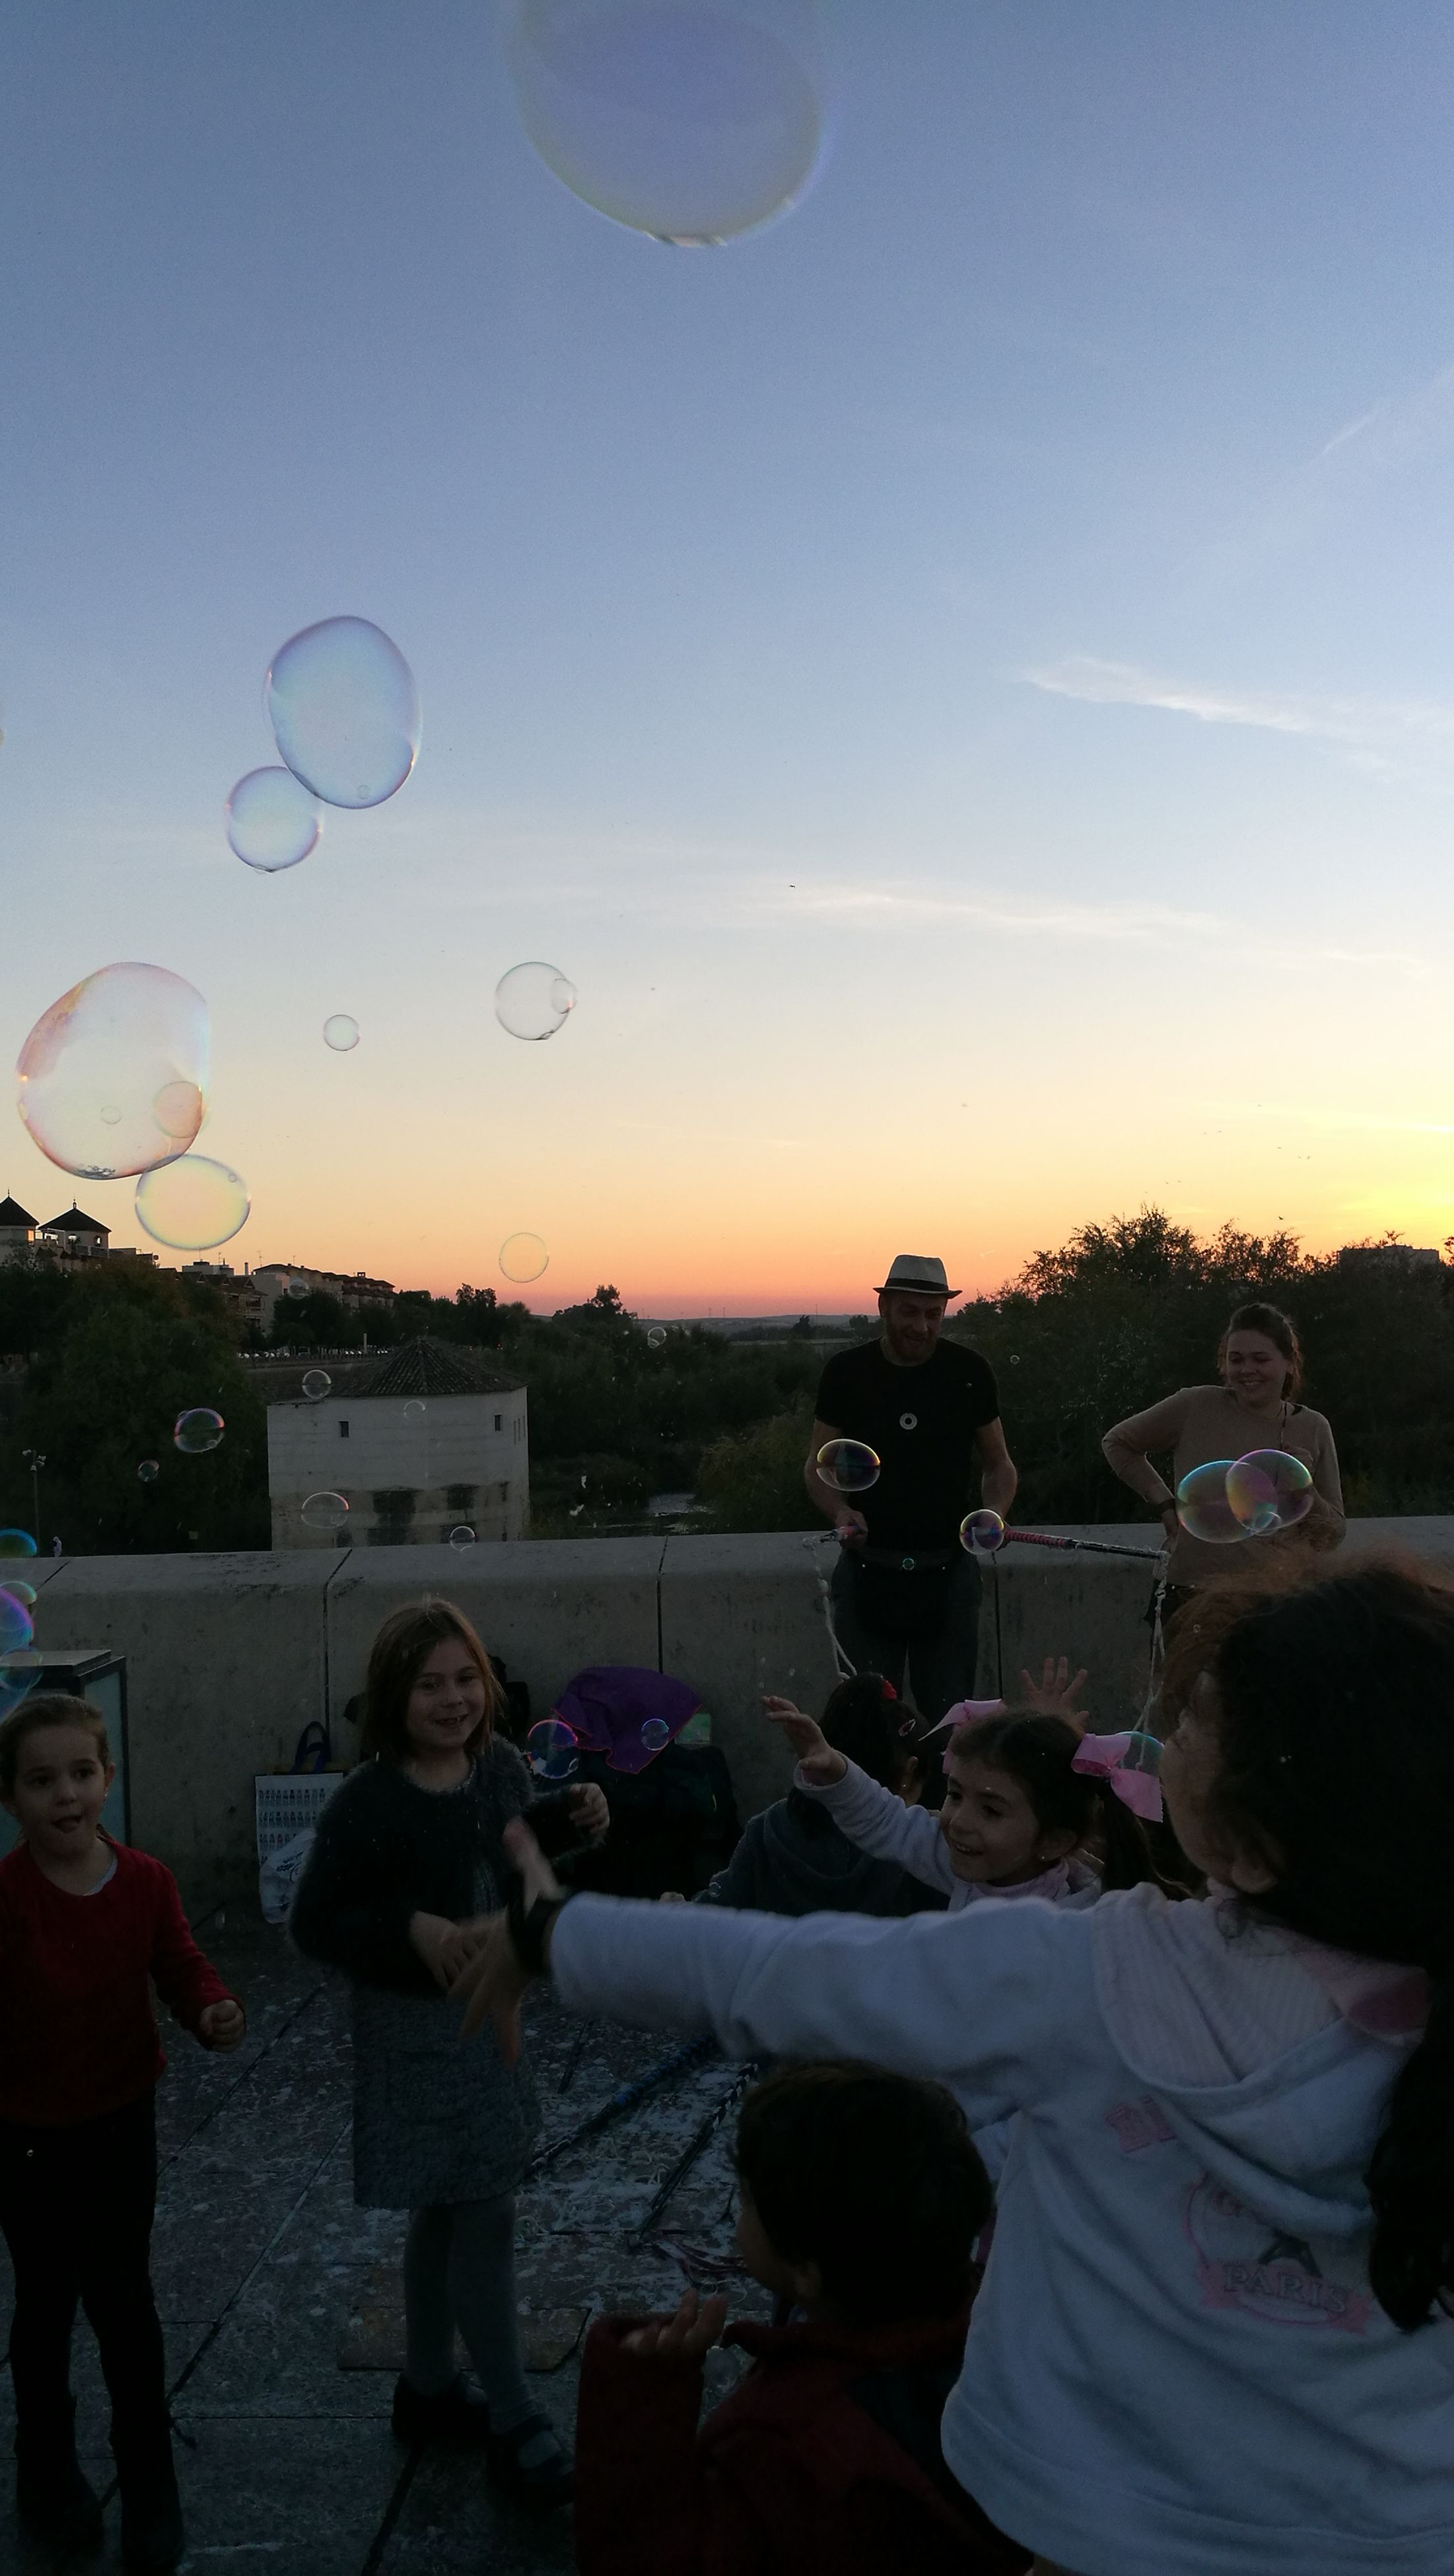 sky, togetherness, large group of people, sunset, adults only, celebration, people, outdoors, adult, women, day